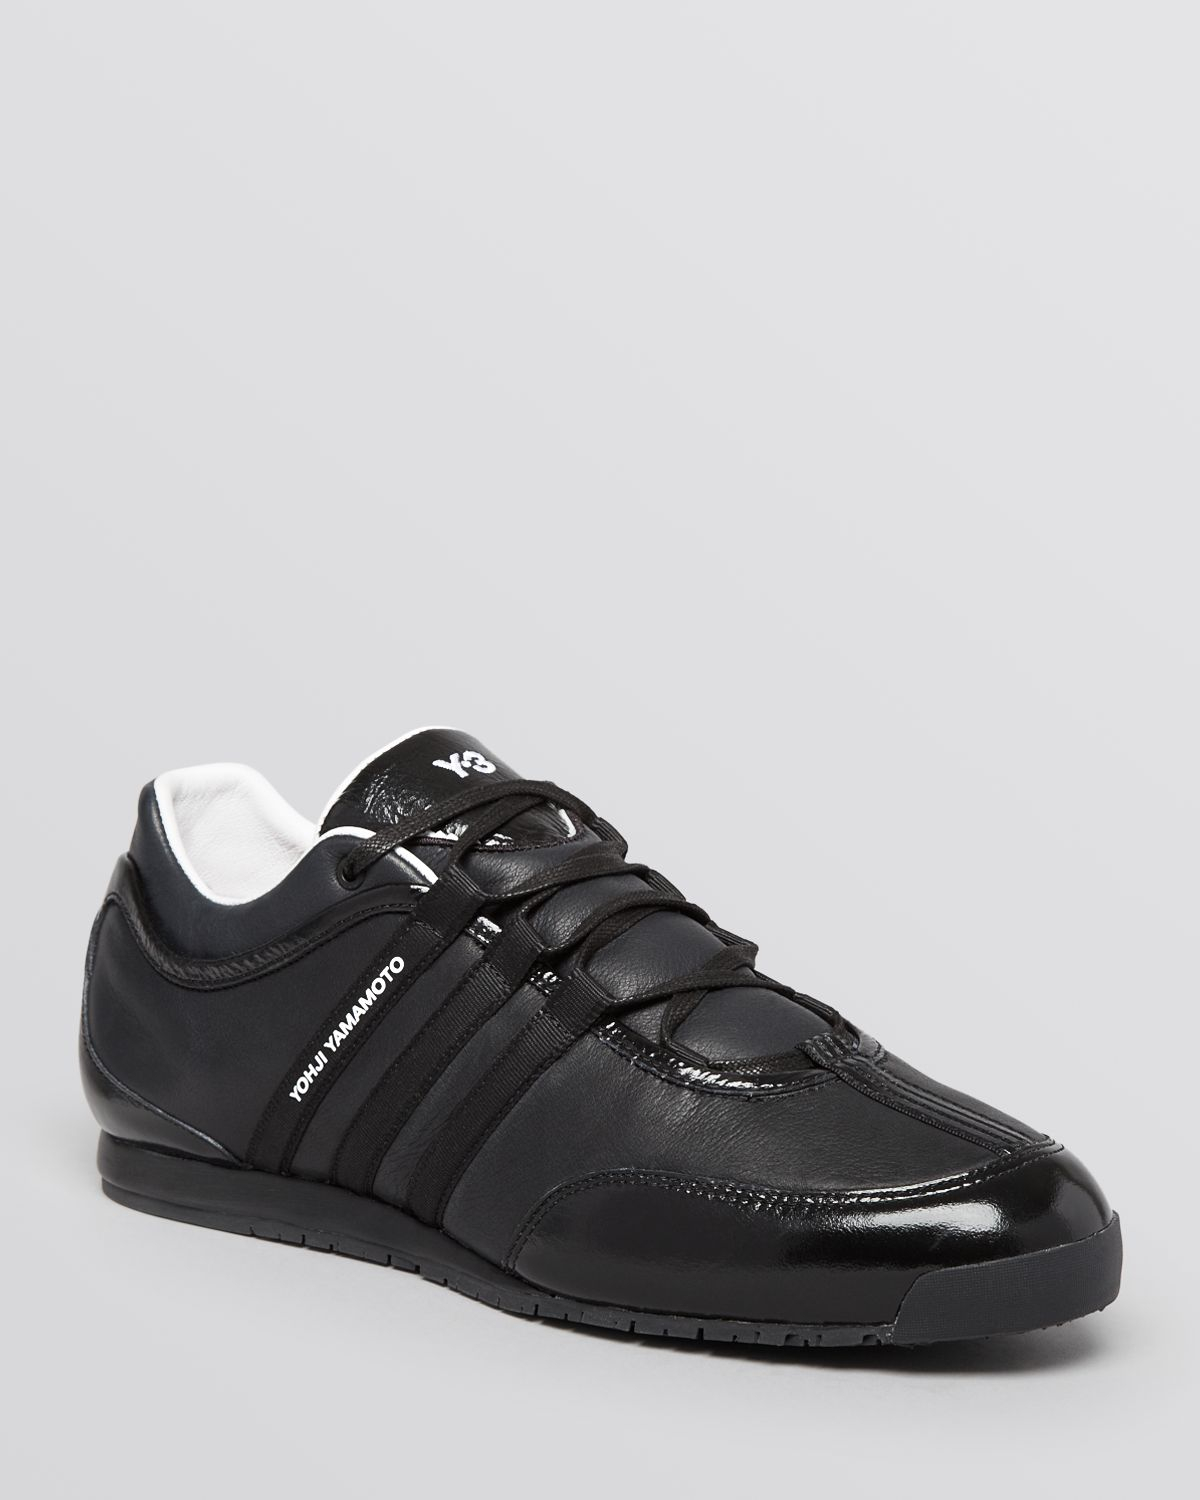 66686eb5d0cb8 Lyst - Y-3 Boxing Classic Ii Sneakers in Black for Men